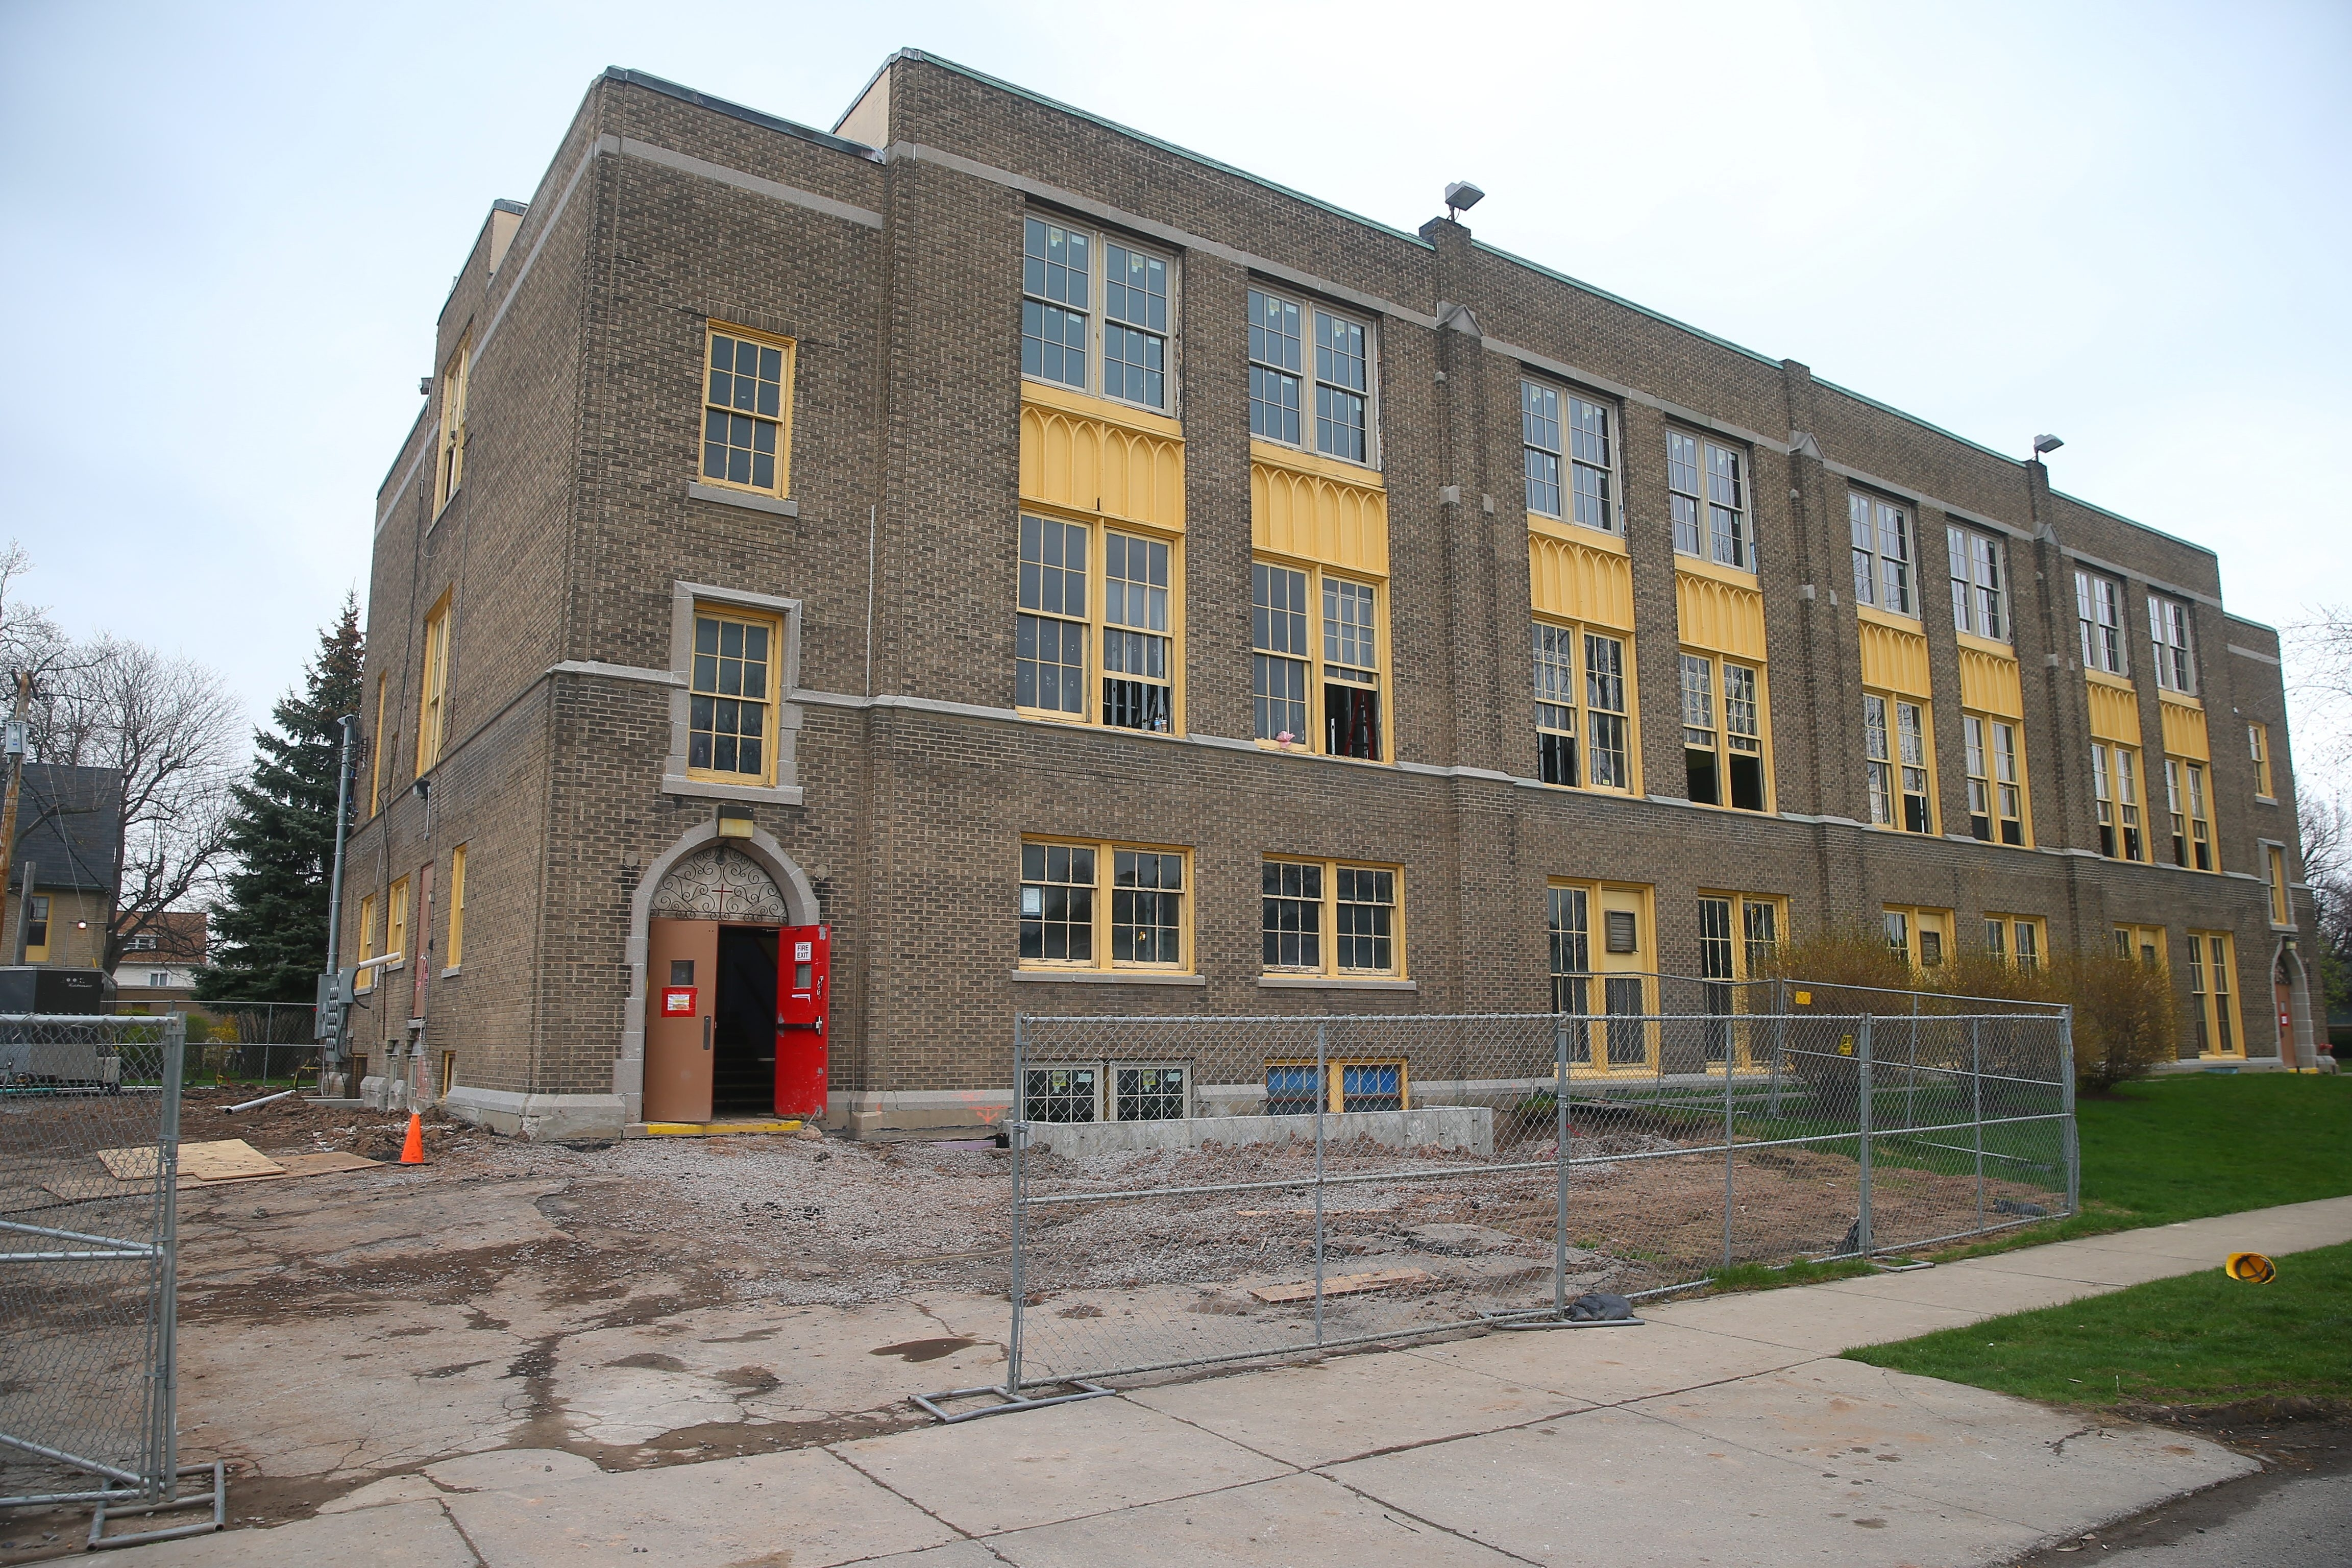 The former St. Rose of Lima school at 1030 Parkside Ave. is being converted into apartments called The School Lofts @ Parkside.